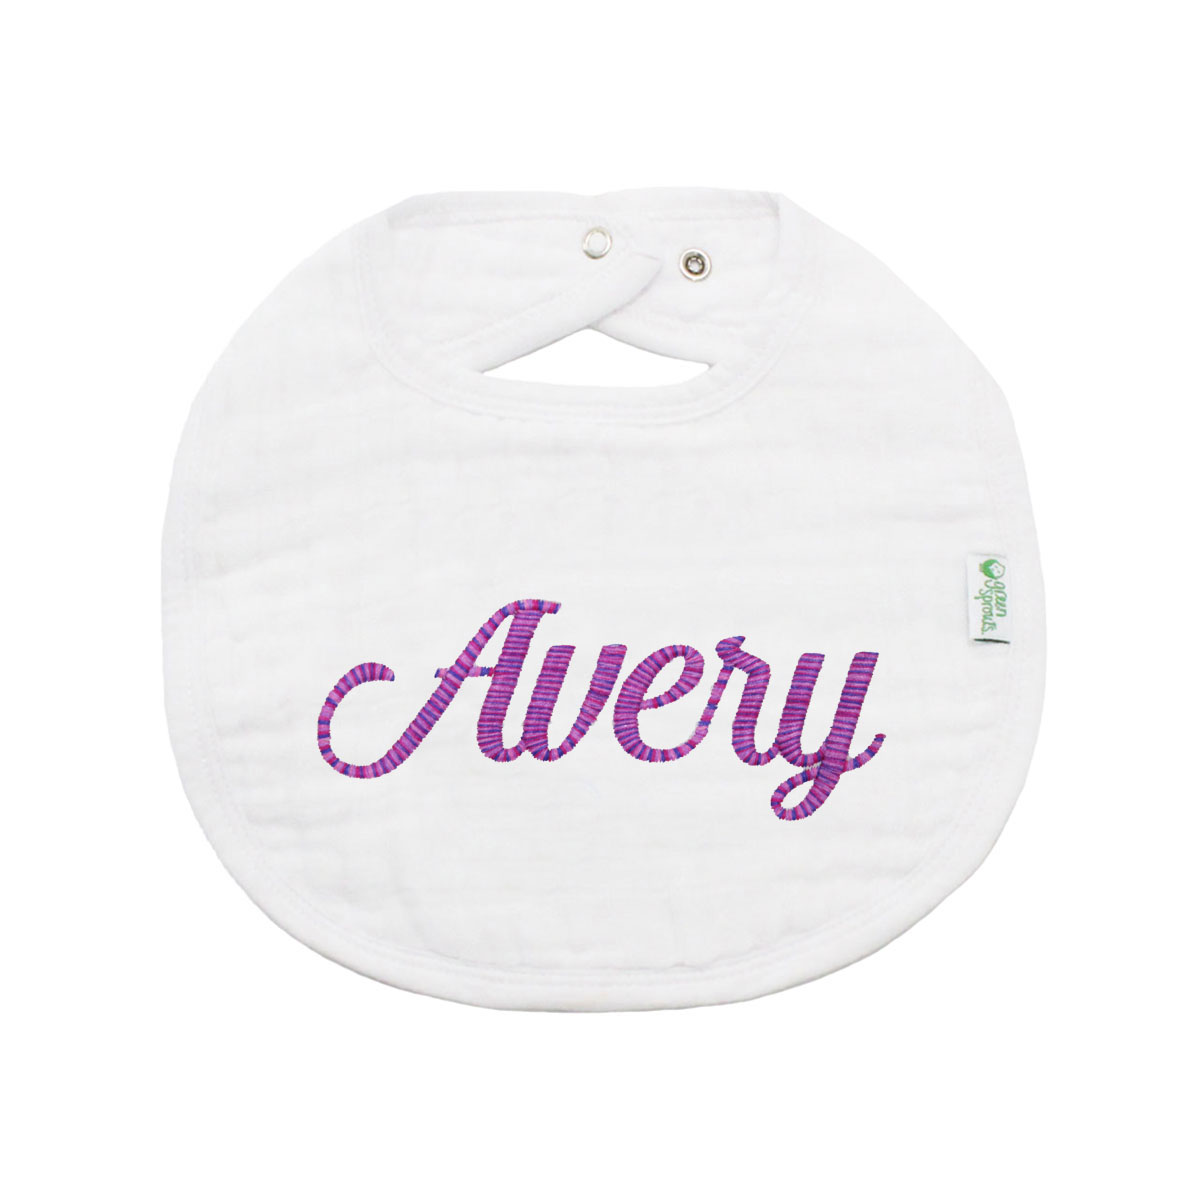 The Tot Organic Cotton White Bib with Personalized Monogram in Avery